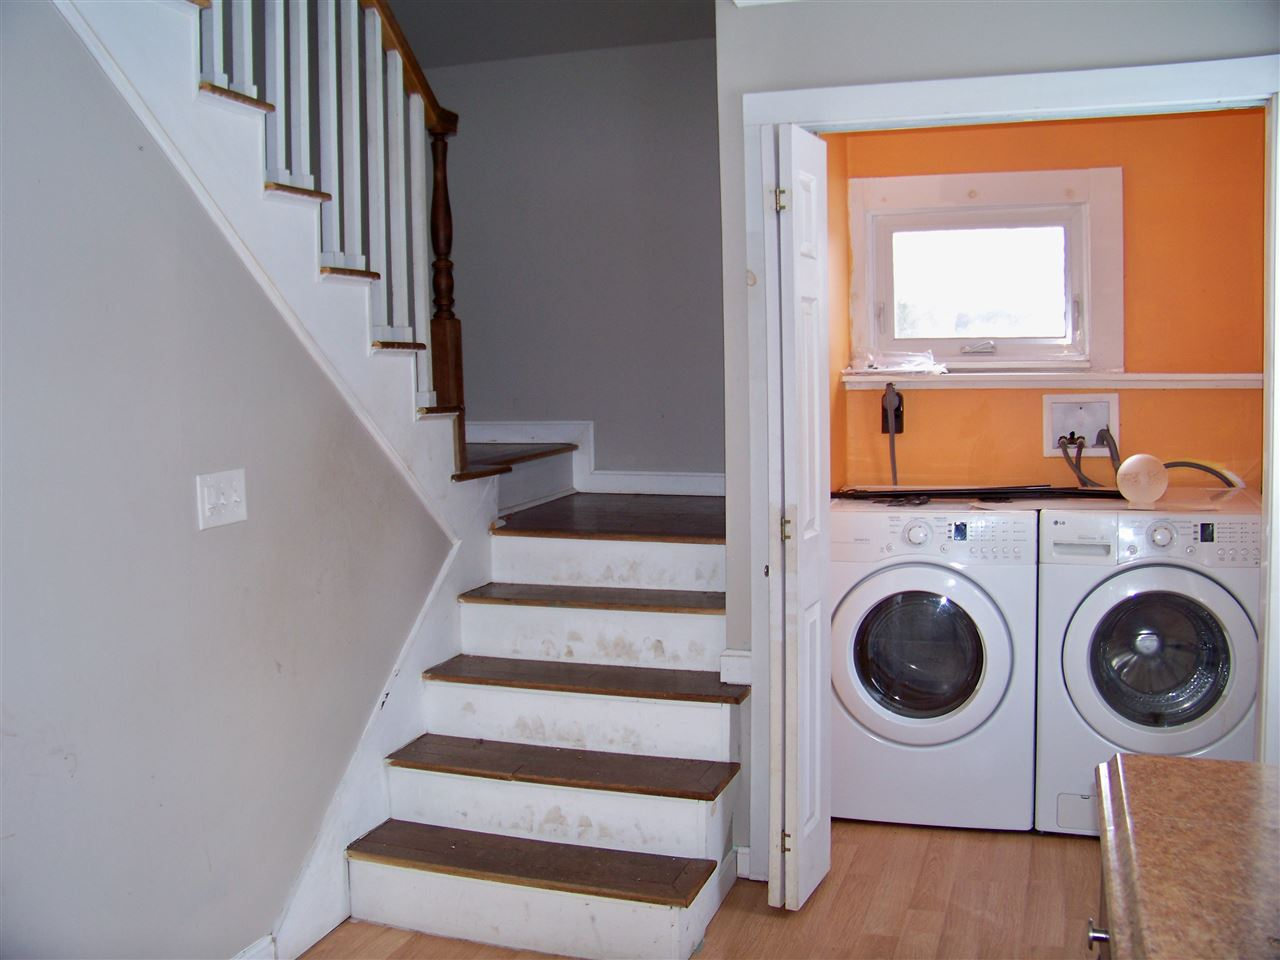 Stair and Laundry